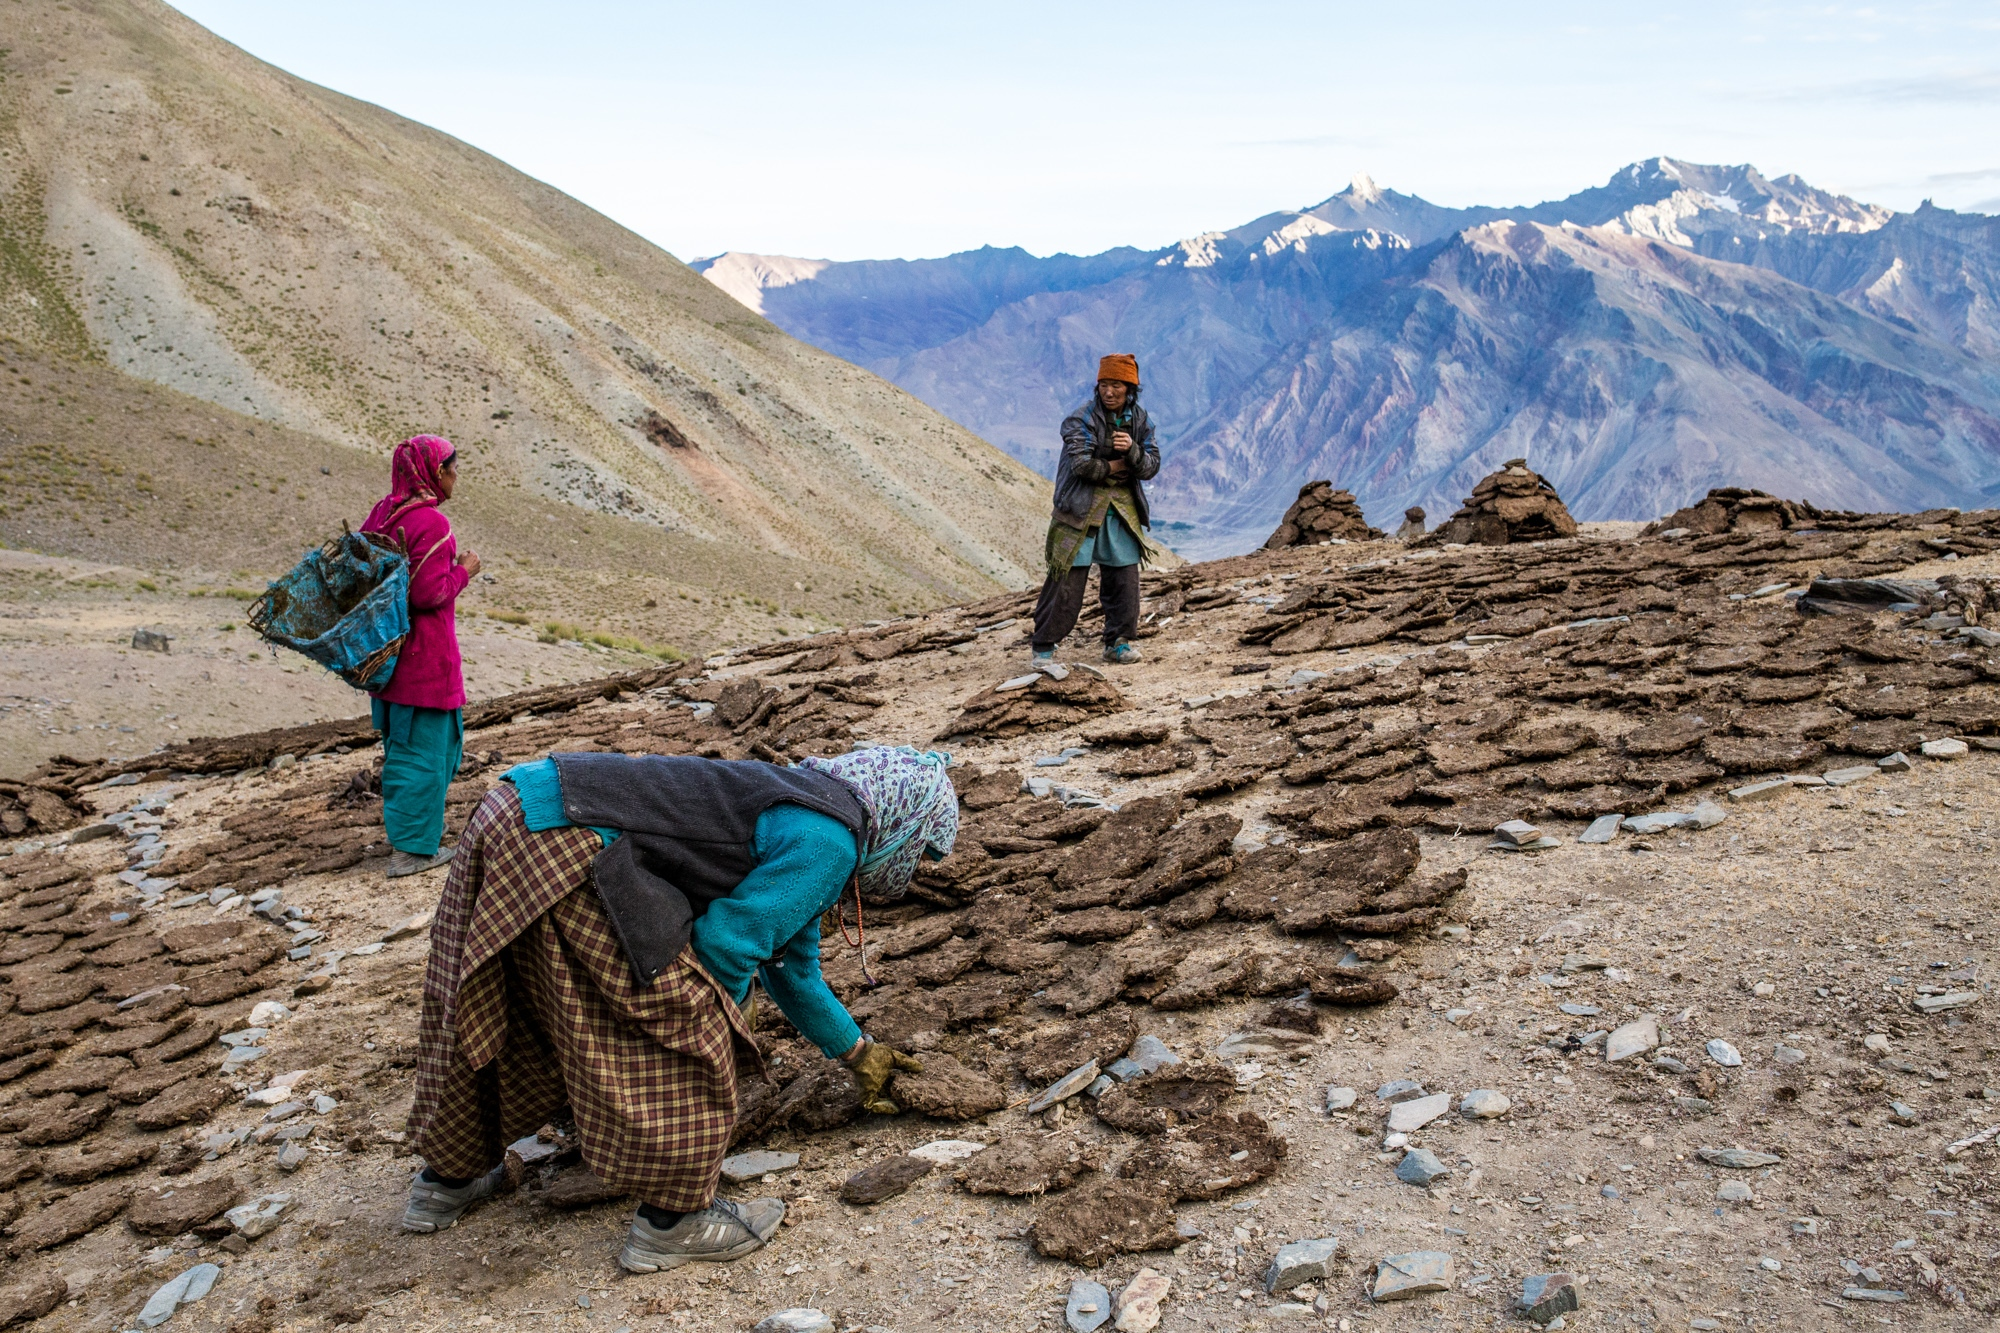 Women in the Zanskar Himalaya, India, organise dried dung cakes during the short summer months in preparation for winter, where they will use it for both cooking and heating fuel.